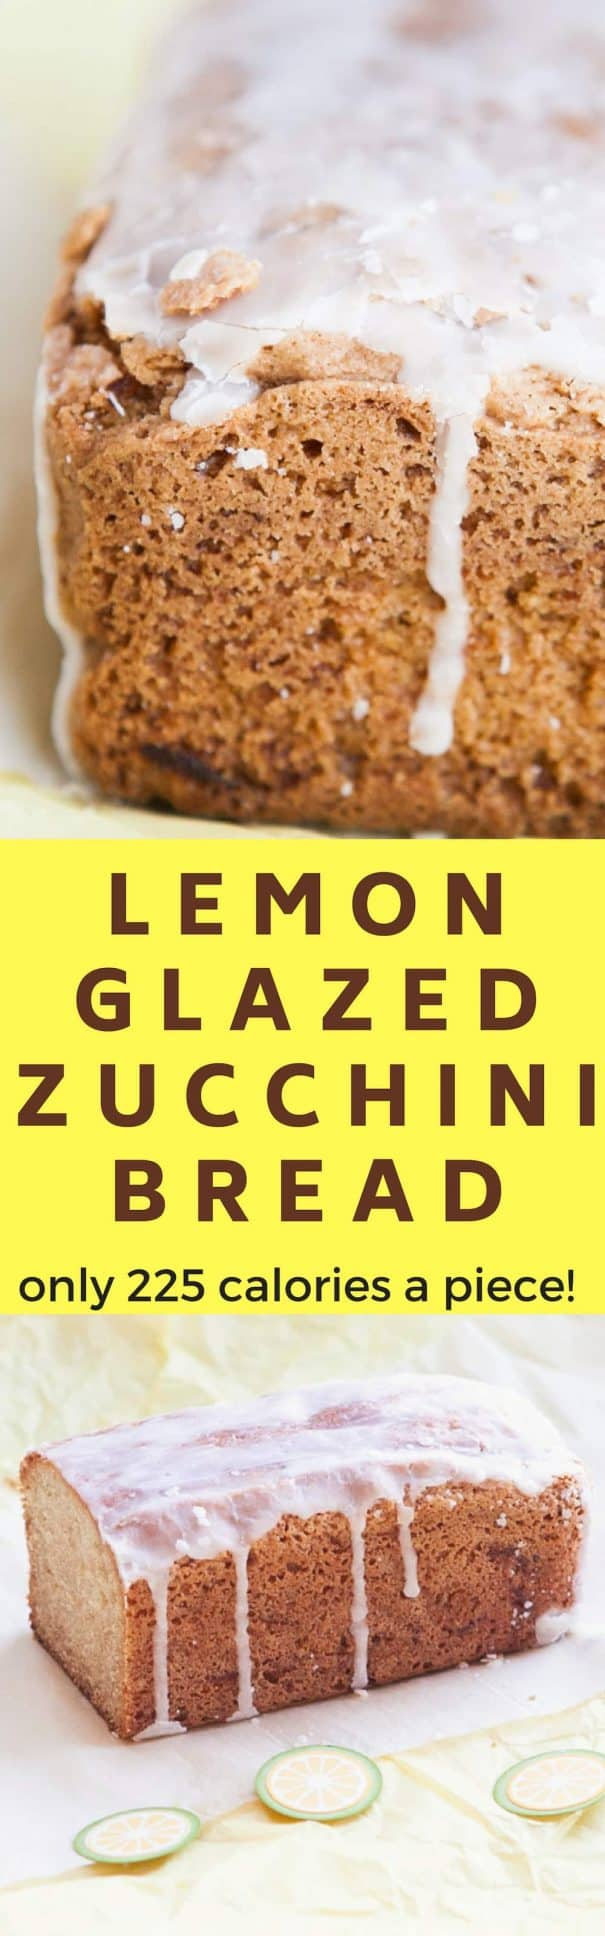 RECIPE for the BEST fluffy and moist Lemon Glazed Zucchini Bread!   There's 2 cups of grated fresh zucchini baked into this easy to make beautiful bread. On top there's a lemon powdered sugar glaze which everyone will love!